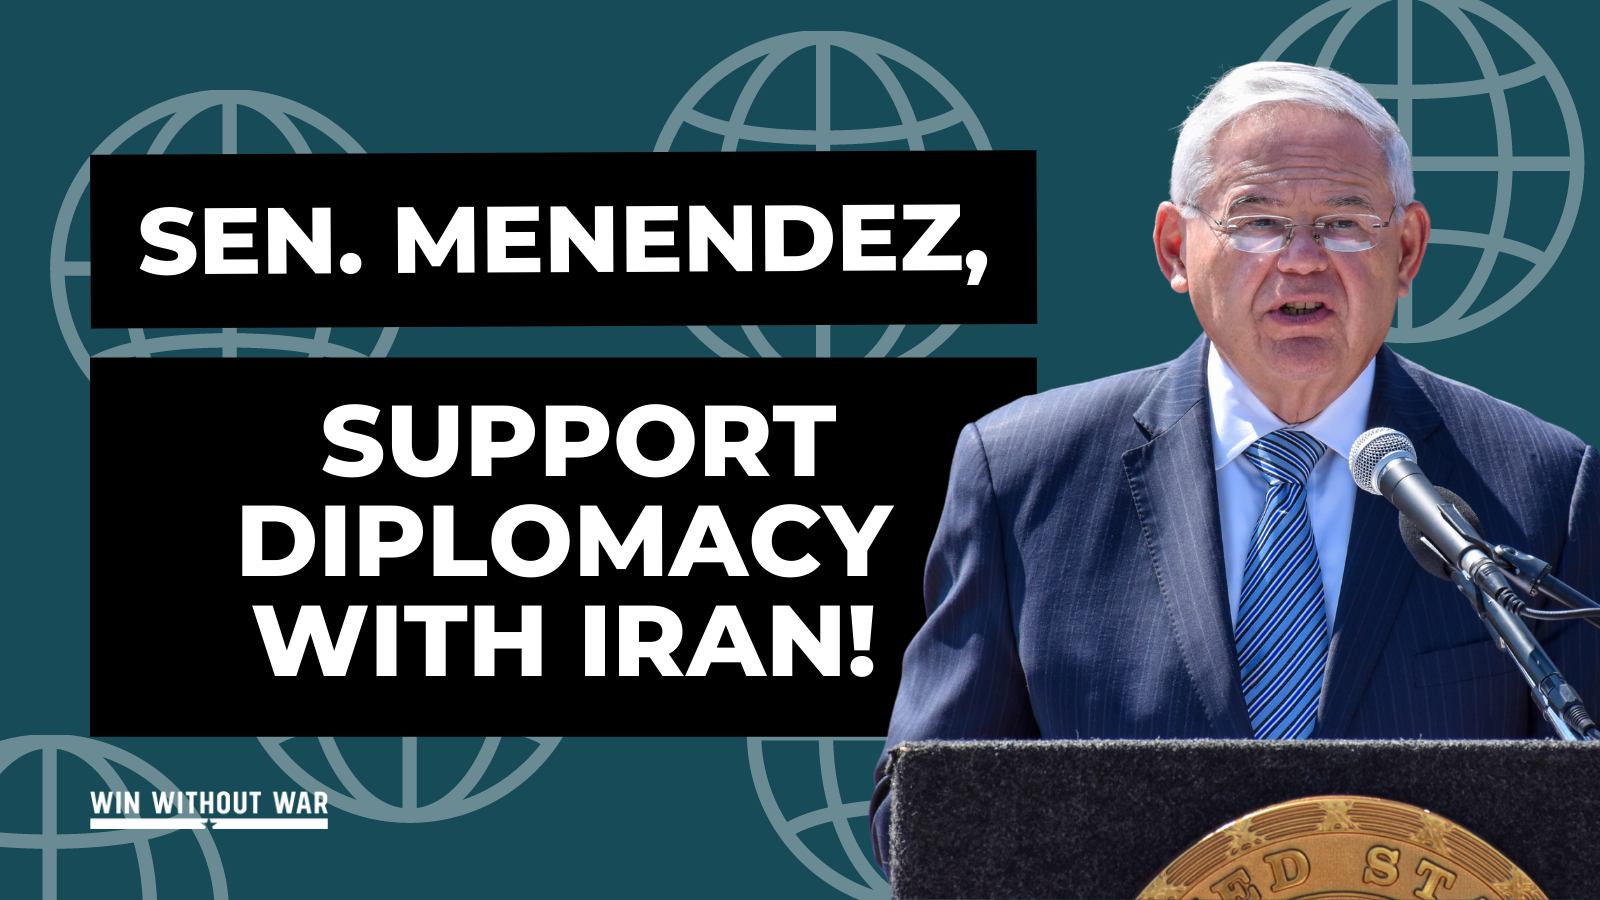 It's time to get behind diplomacy with Iran, Senator Menendez!